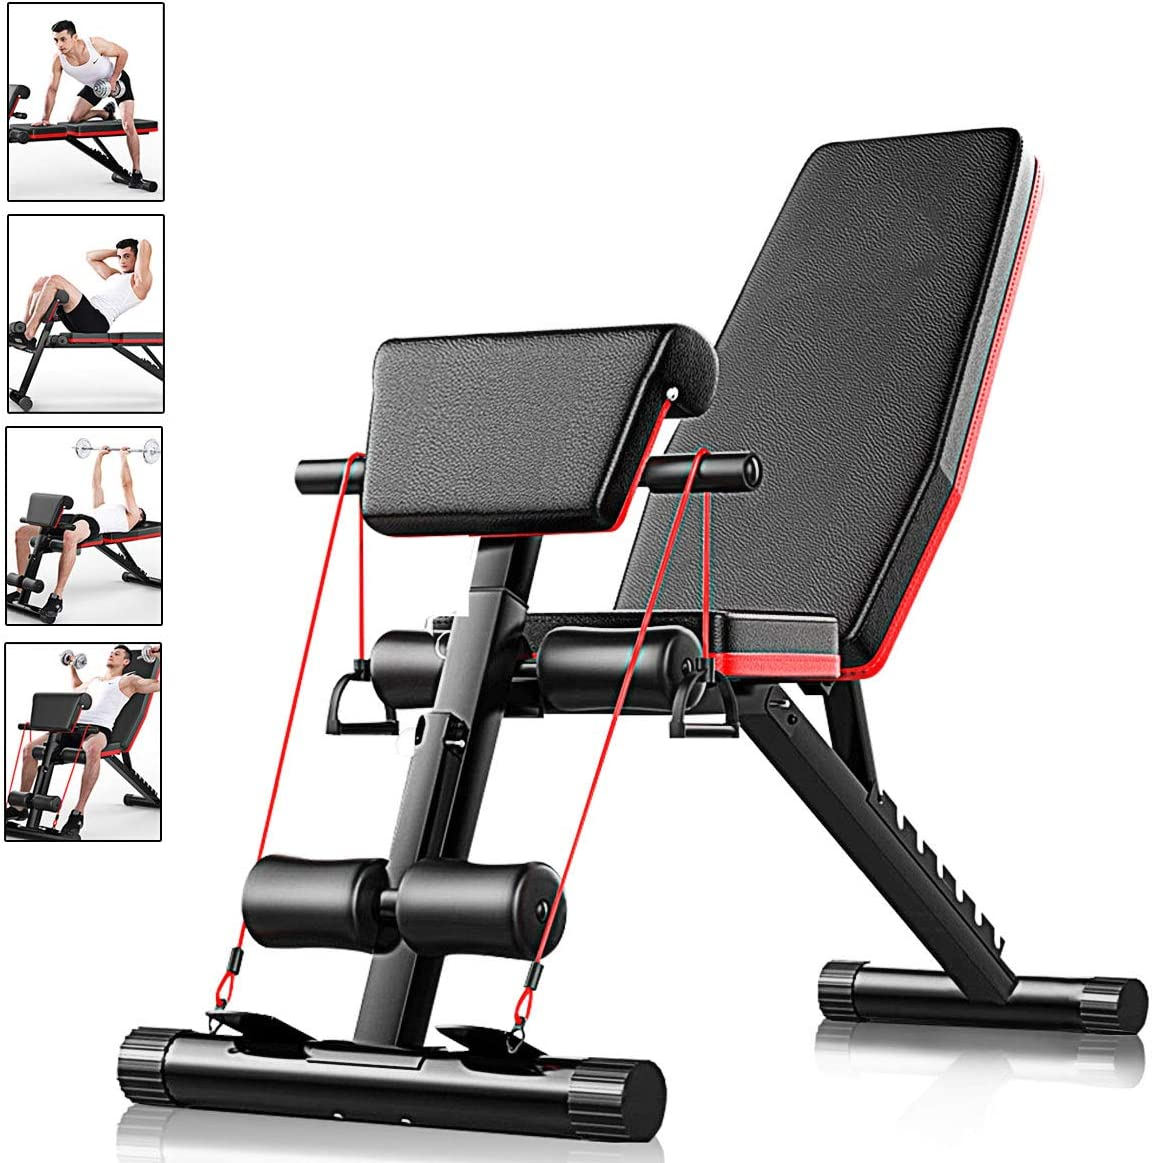 Weight Bench Multi Adjustable Gym Workout Exercise Flat Incline Decline Sit Up